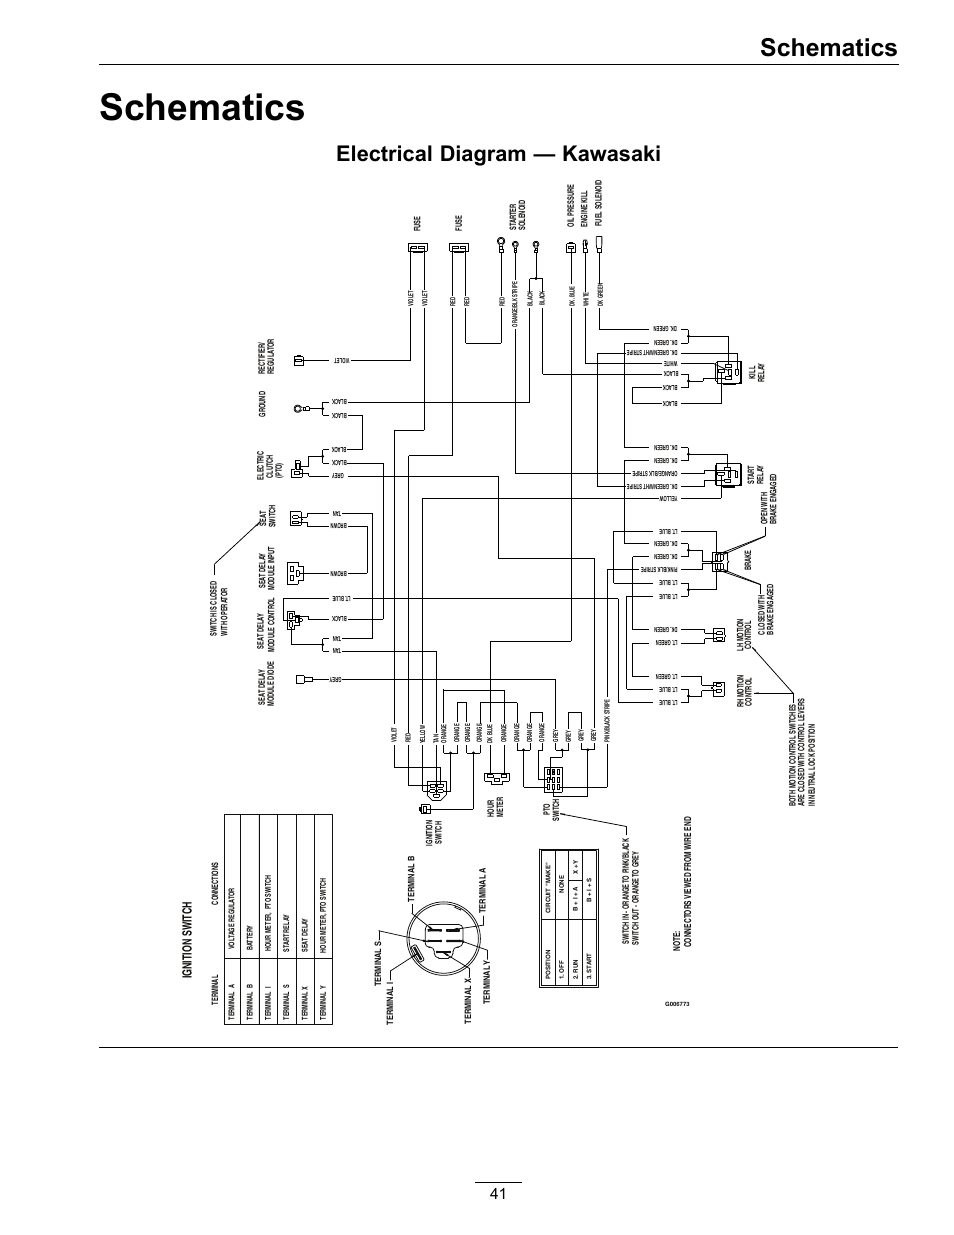 Kawasaki Wiring Diagrams On Electrical Wiring Diagrams For John Deere